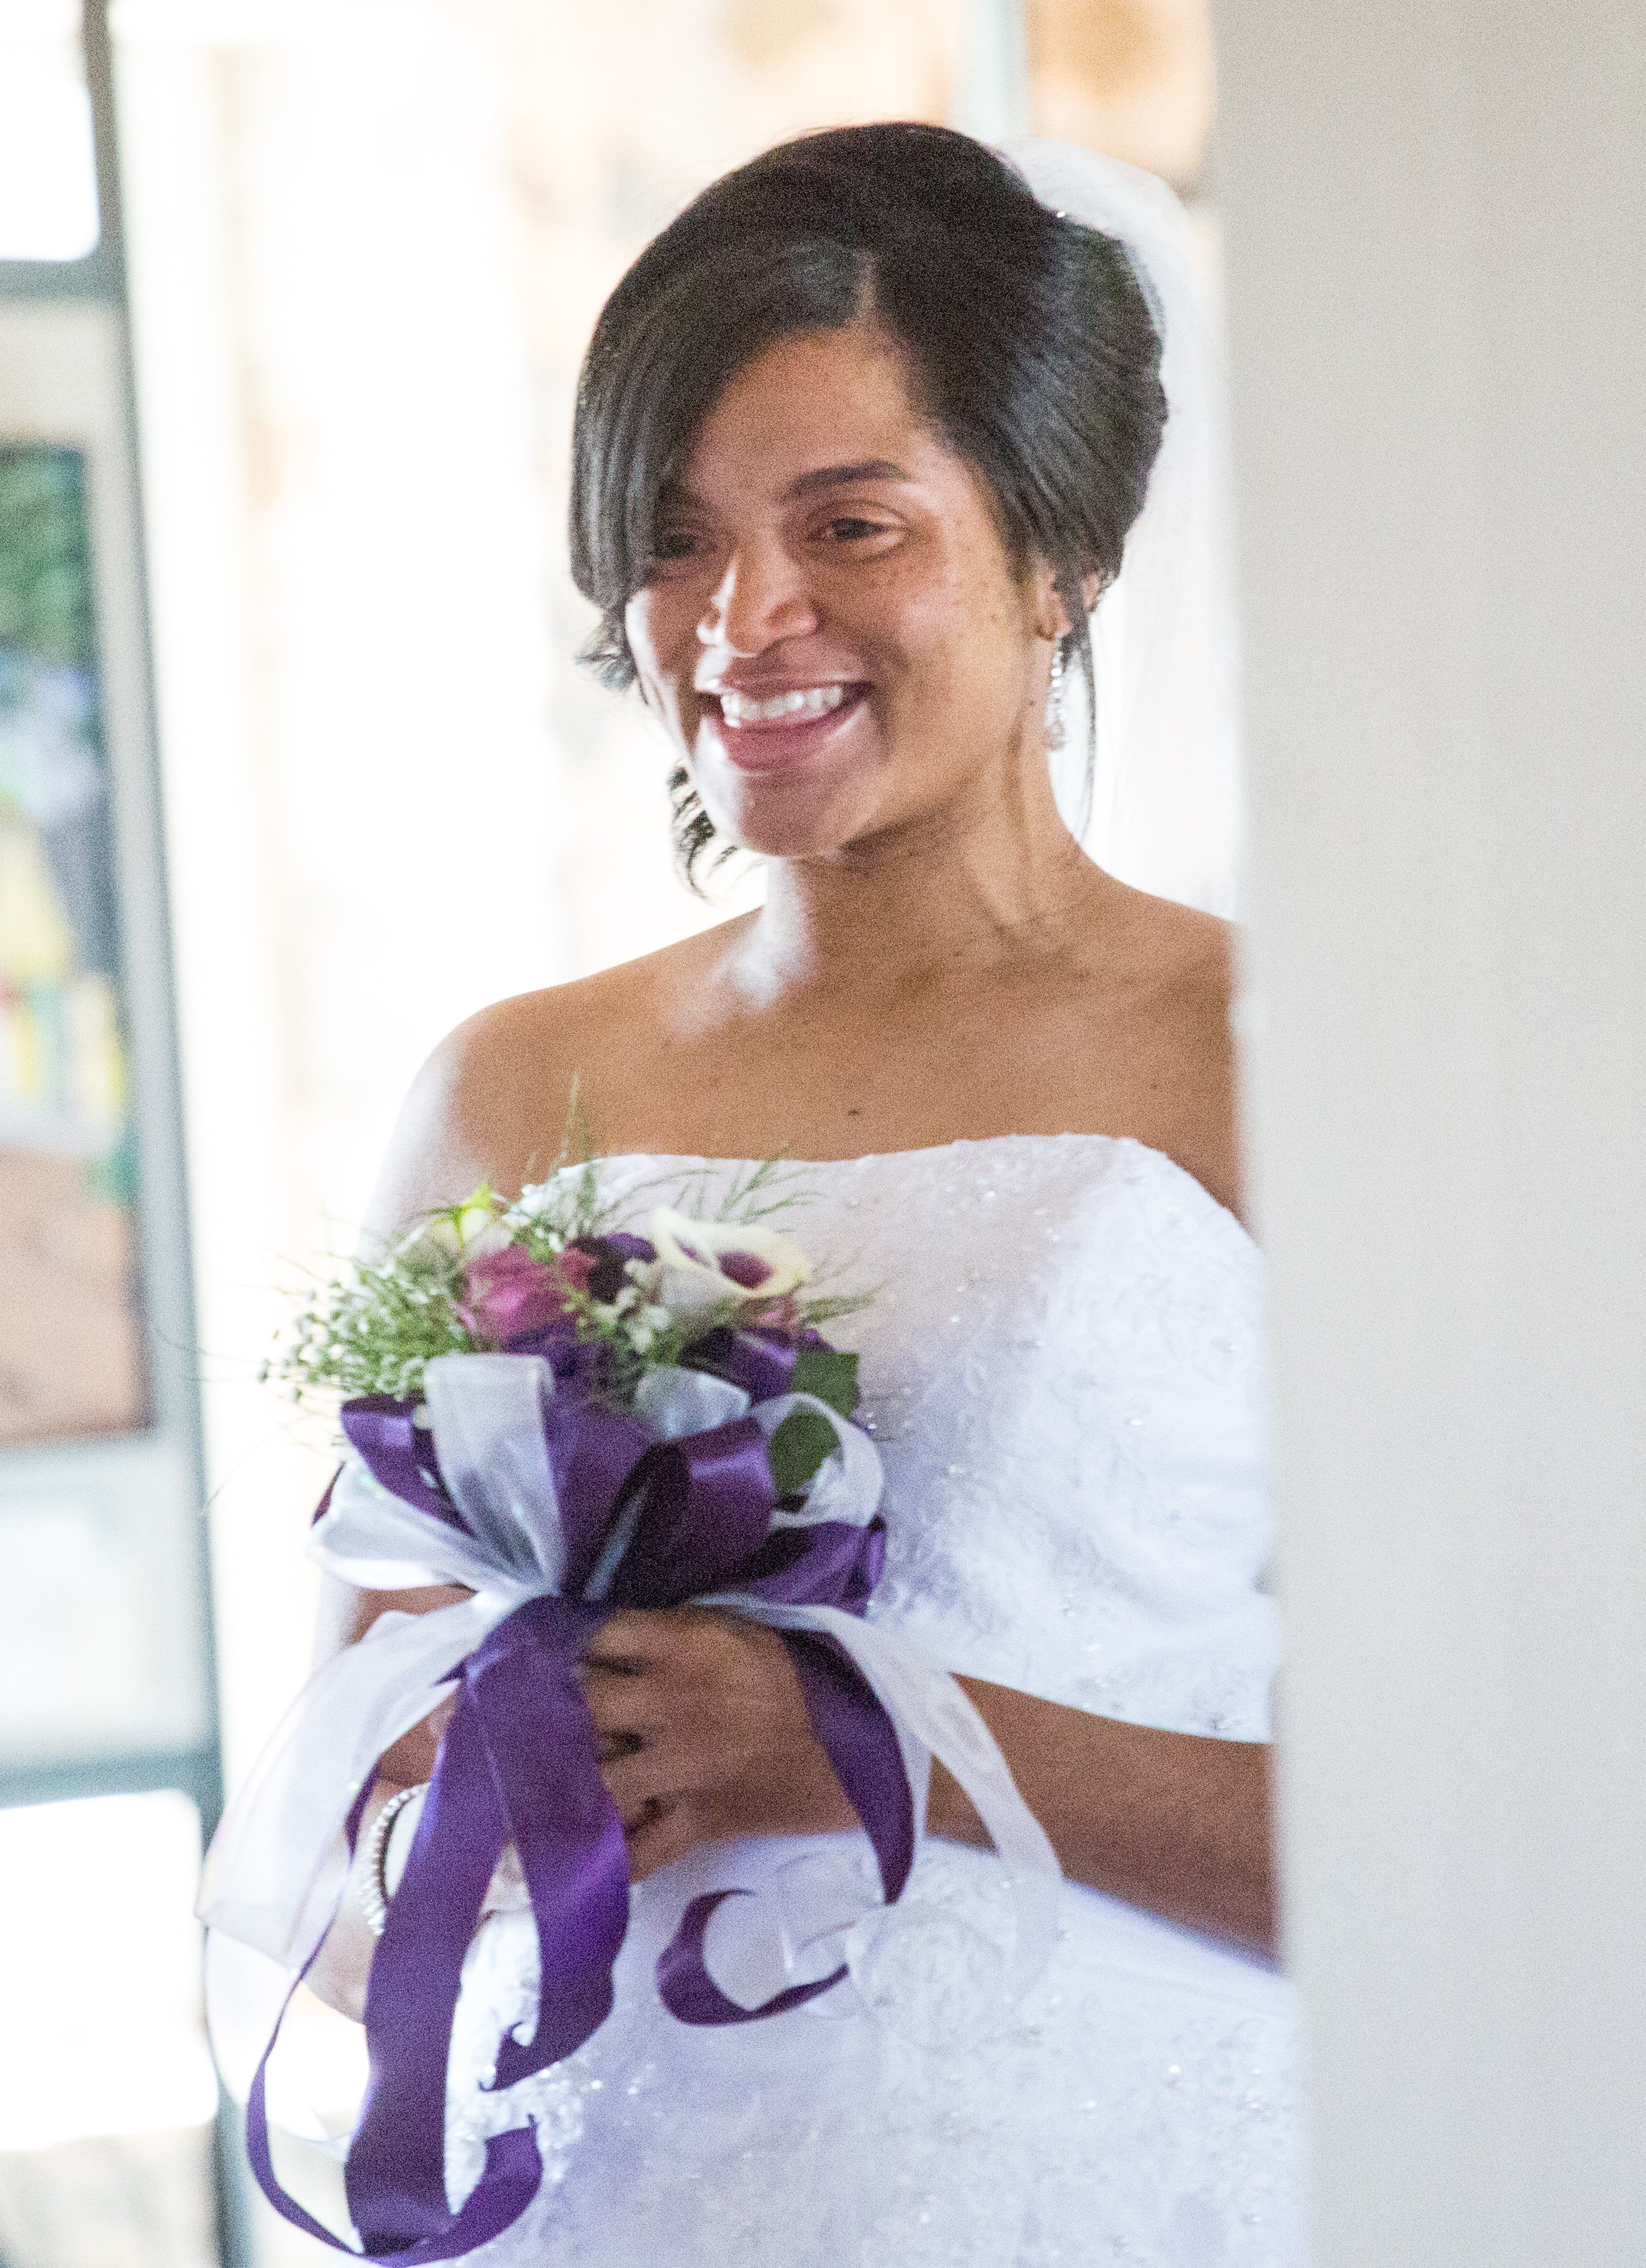 5-24-14_Errol Ebanks_The Finney Wedding_0419.jpg